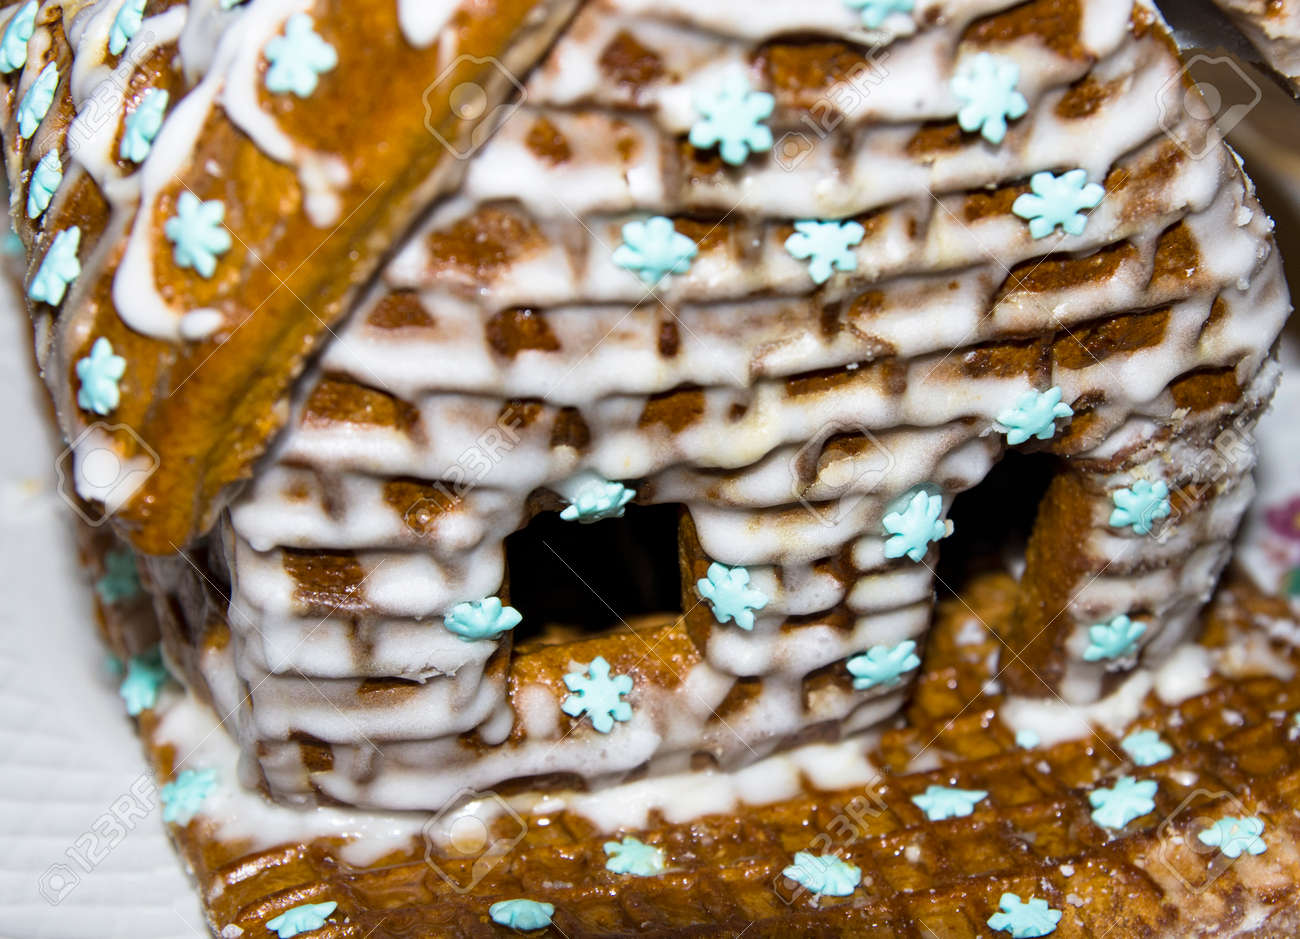 House of cookies in sugar glaze large - 163257570